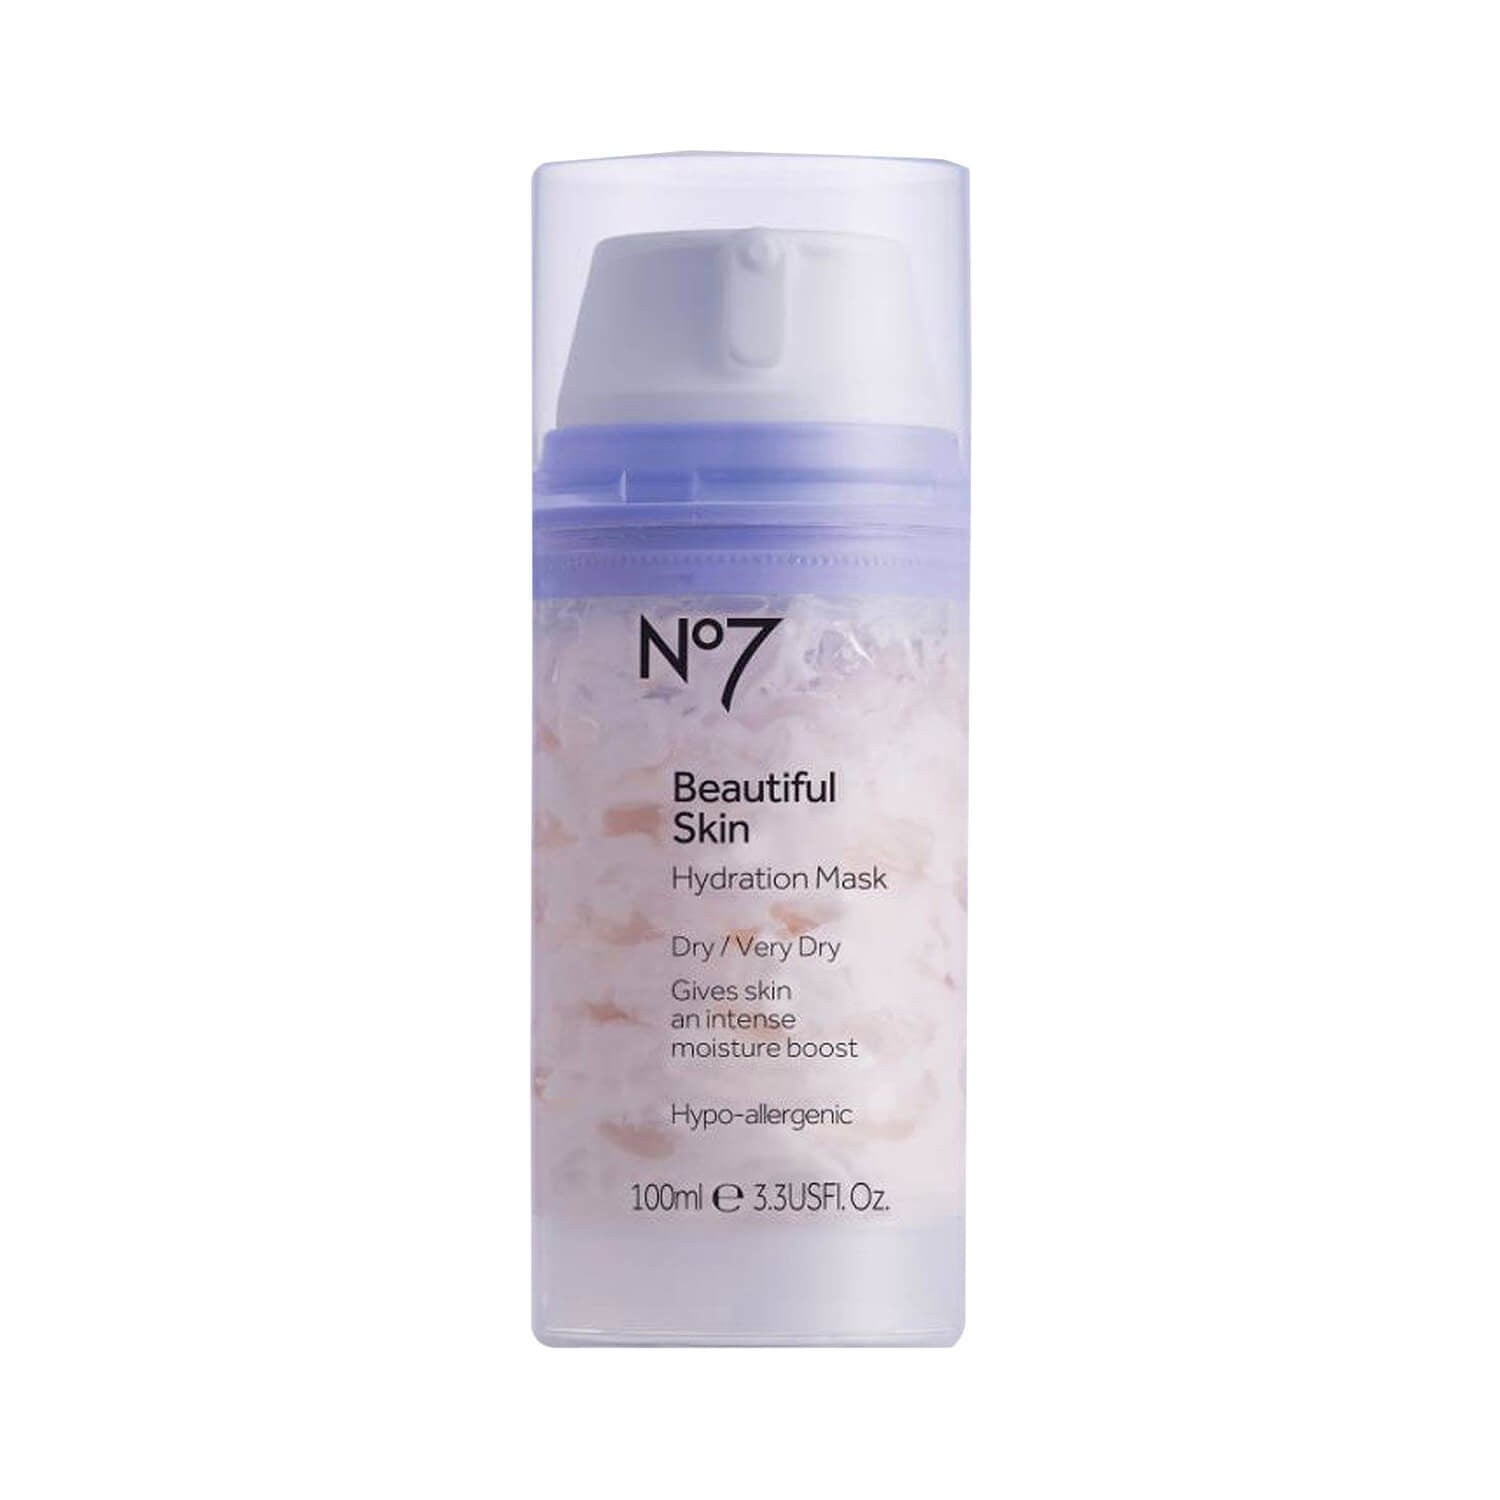 Boots No7 Beautiful Skin Hydration Mask for Dry Very Dry Skin 100ml